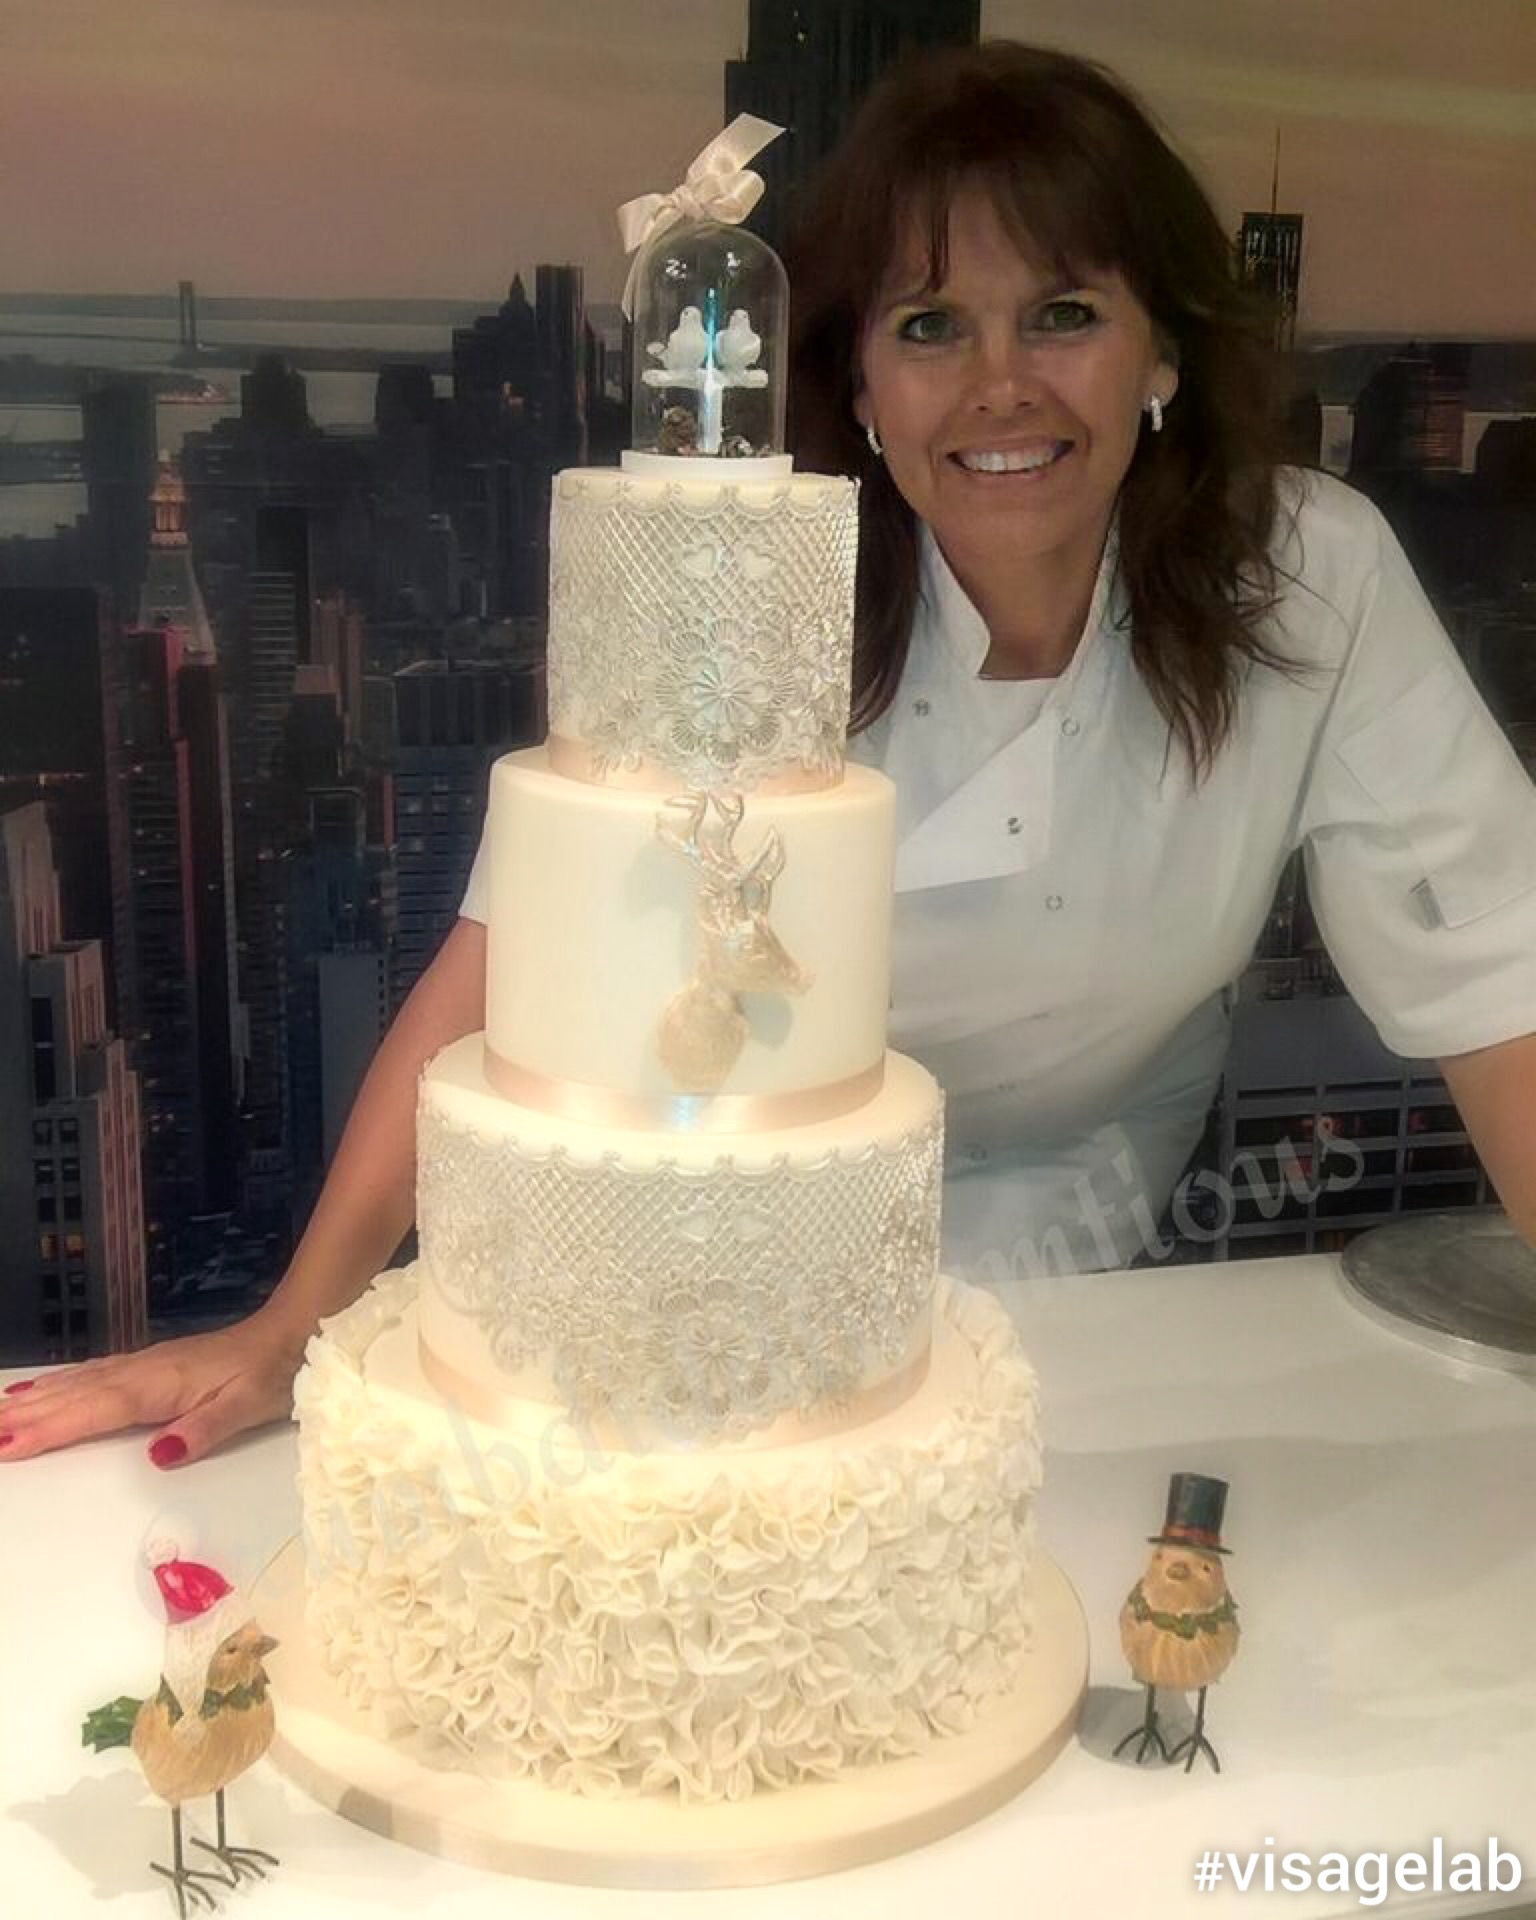 Cake Decorator Interview with Crumbdiddlyumtious. - Edible ...